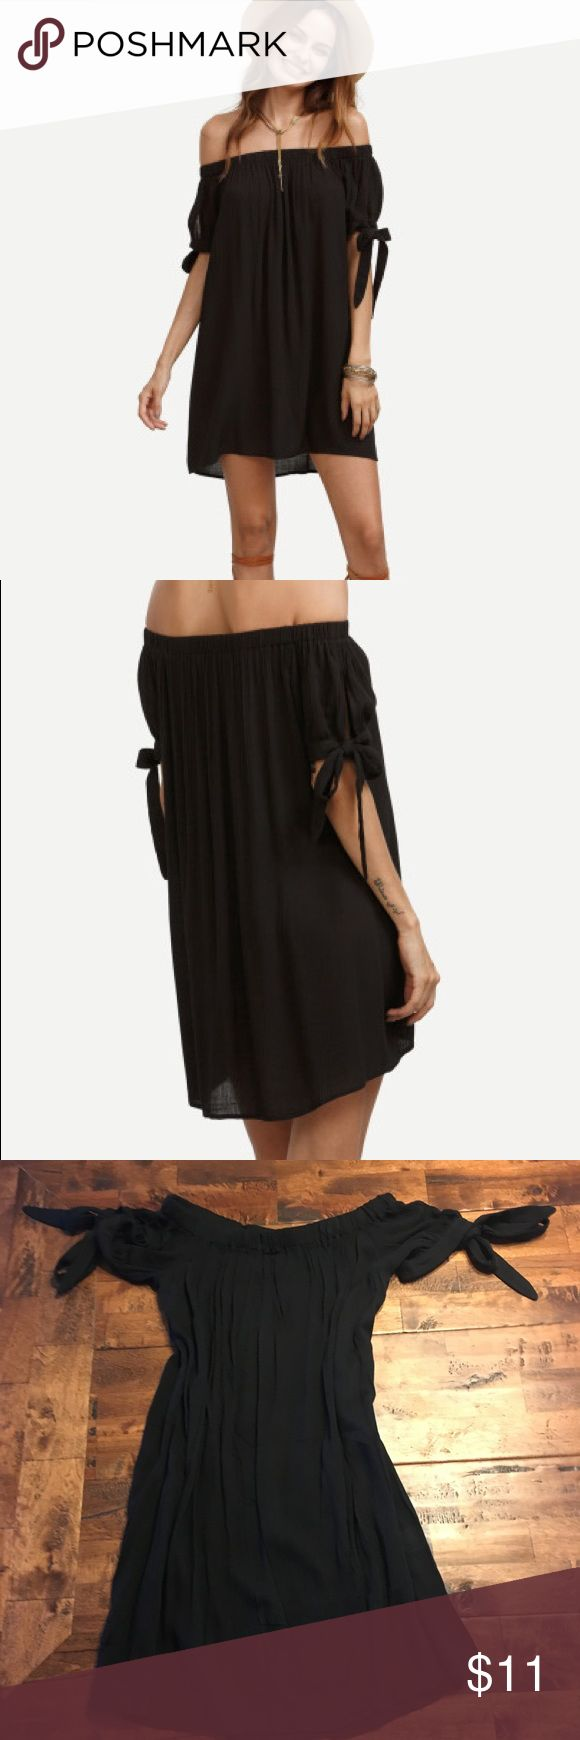 Off shoulder swimsuit cover up dress NWOT Off shoulder dress with sleeve ties. It is not lined so I suggest using it as a swimsuit cover up :) never worn Dresses Mini